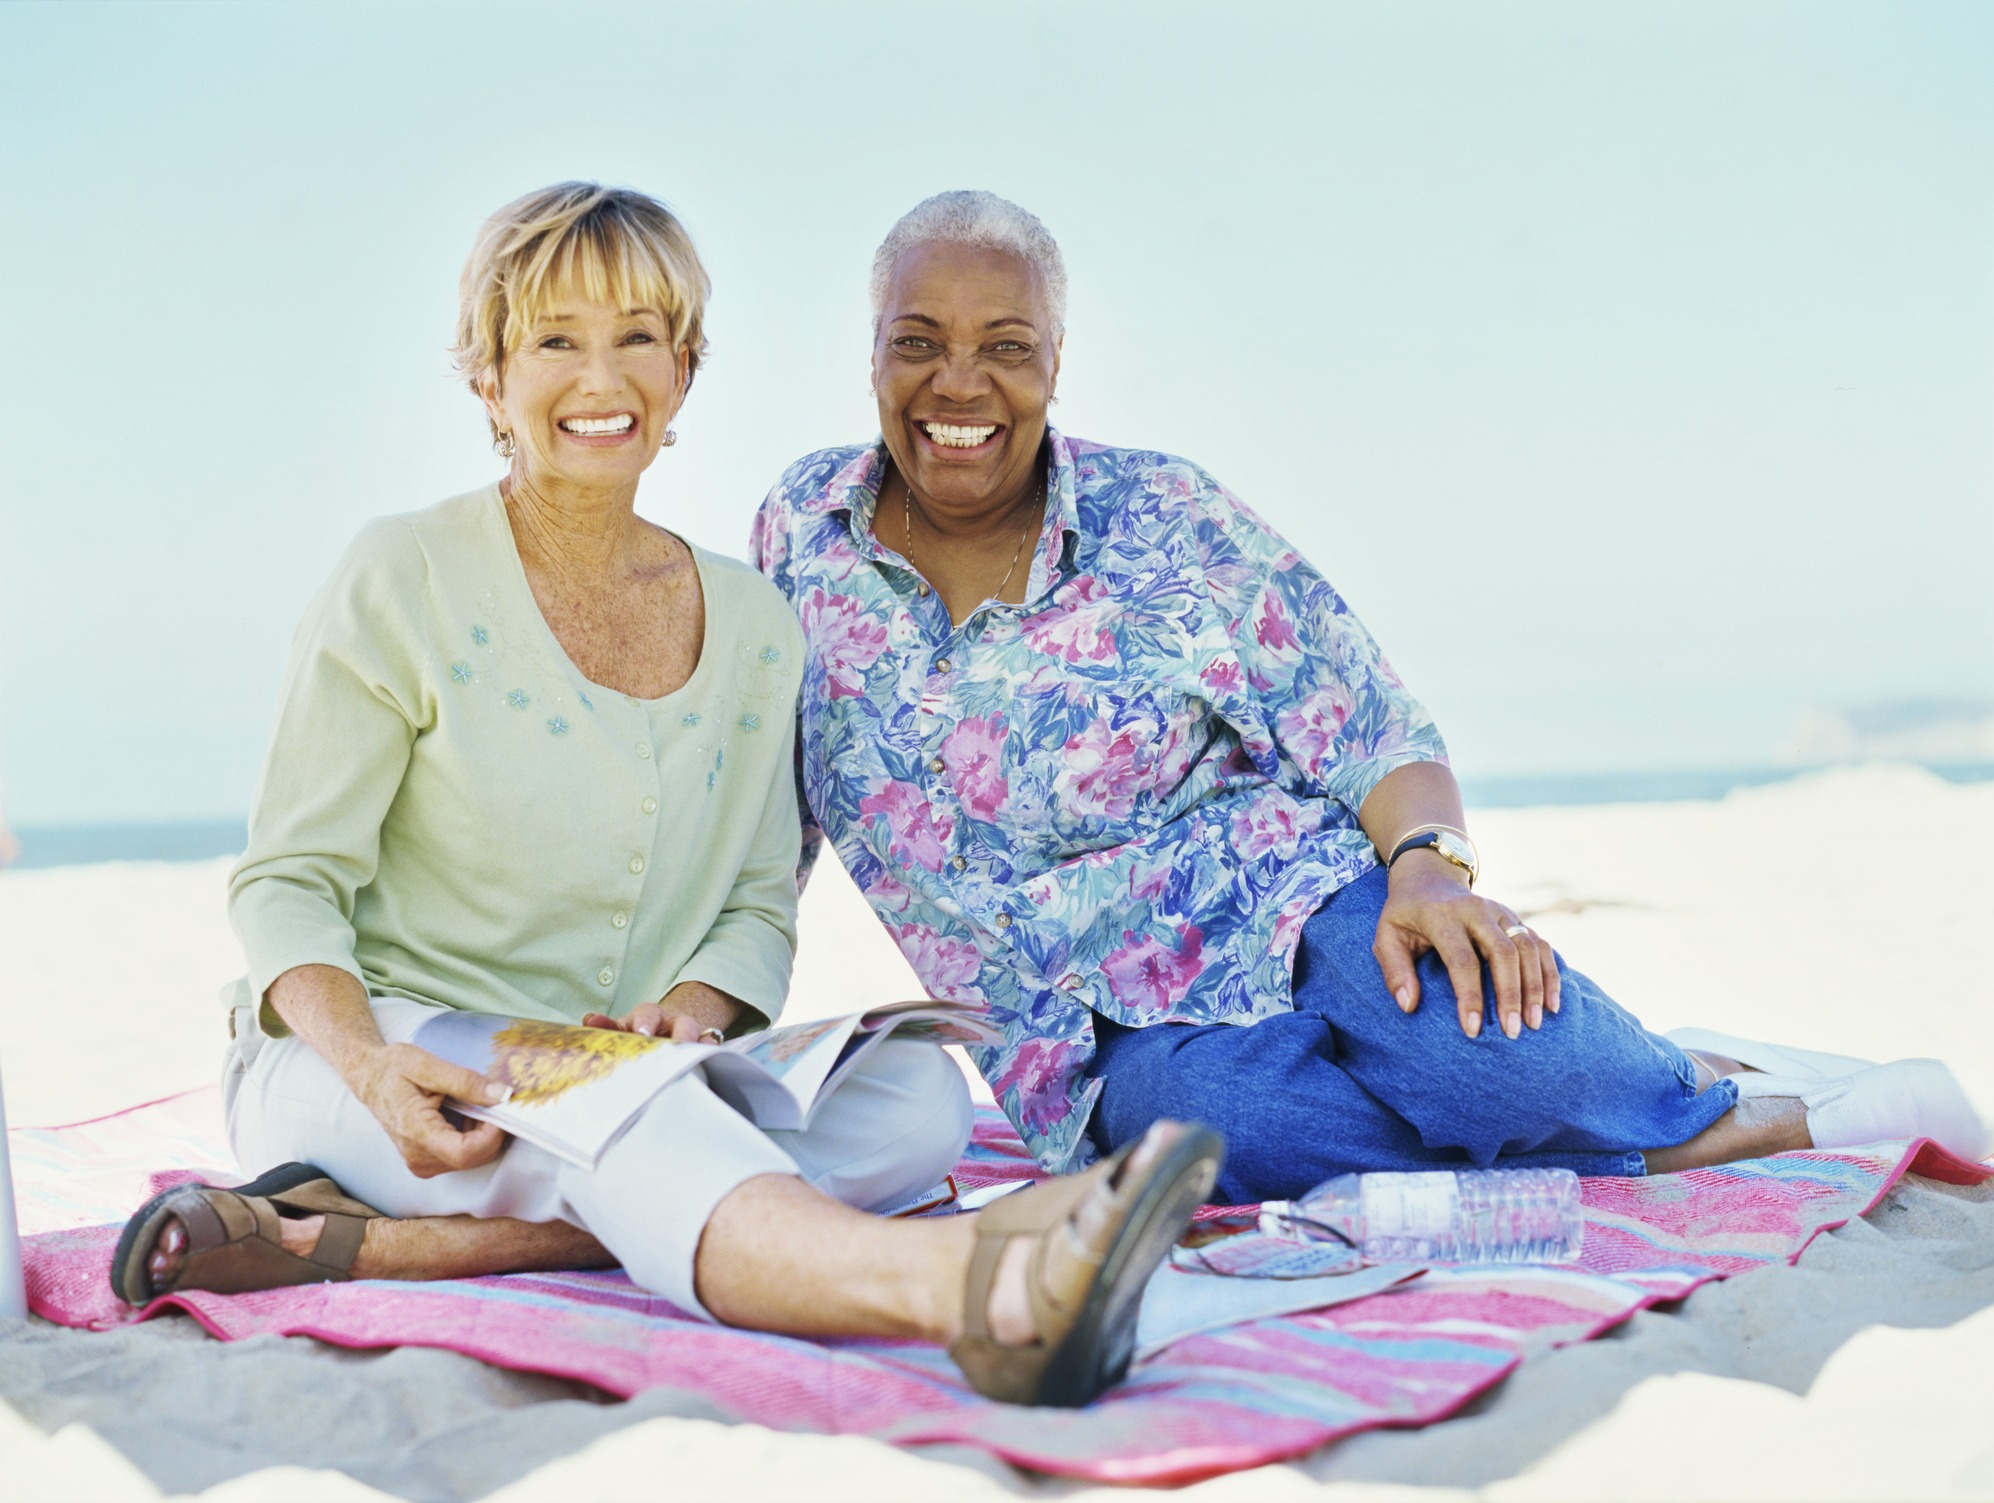 portrait of two mature women sitting on the beach